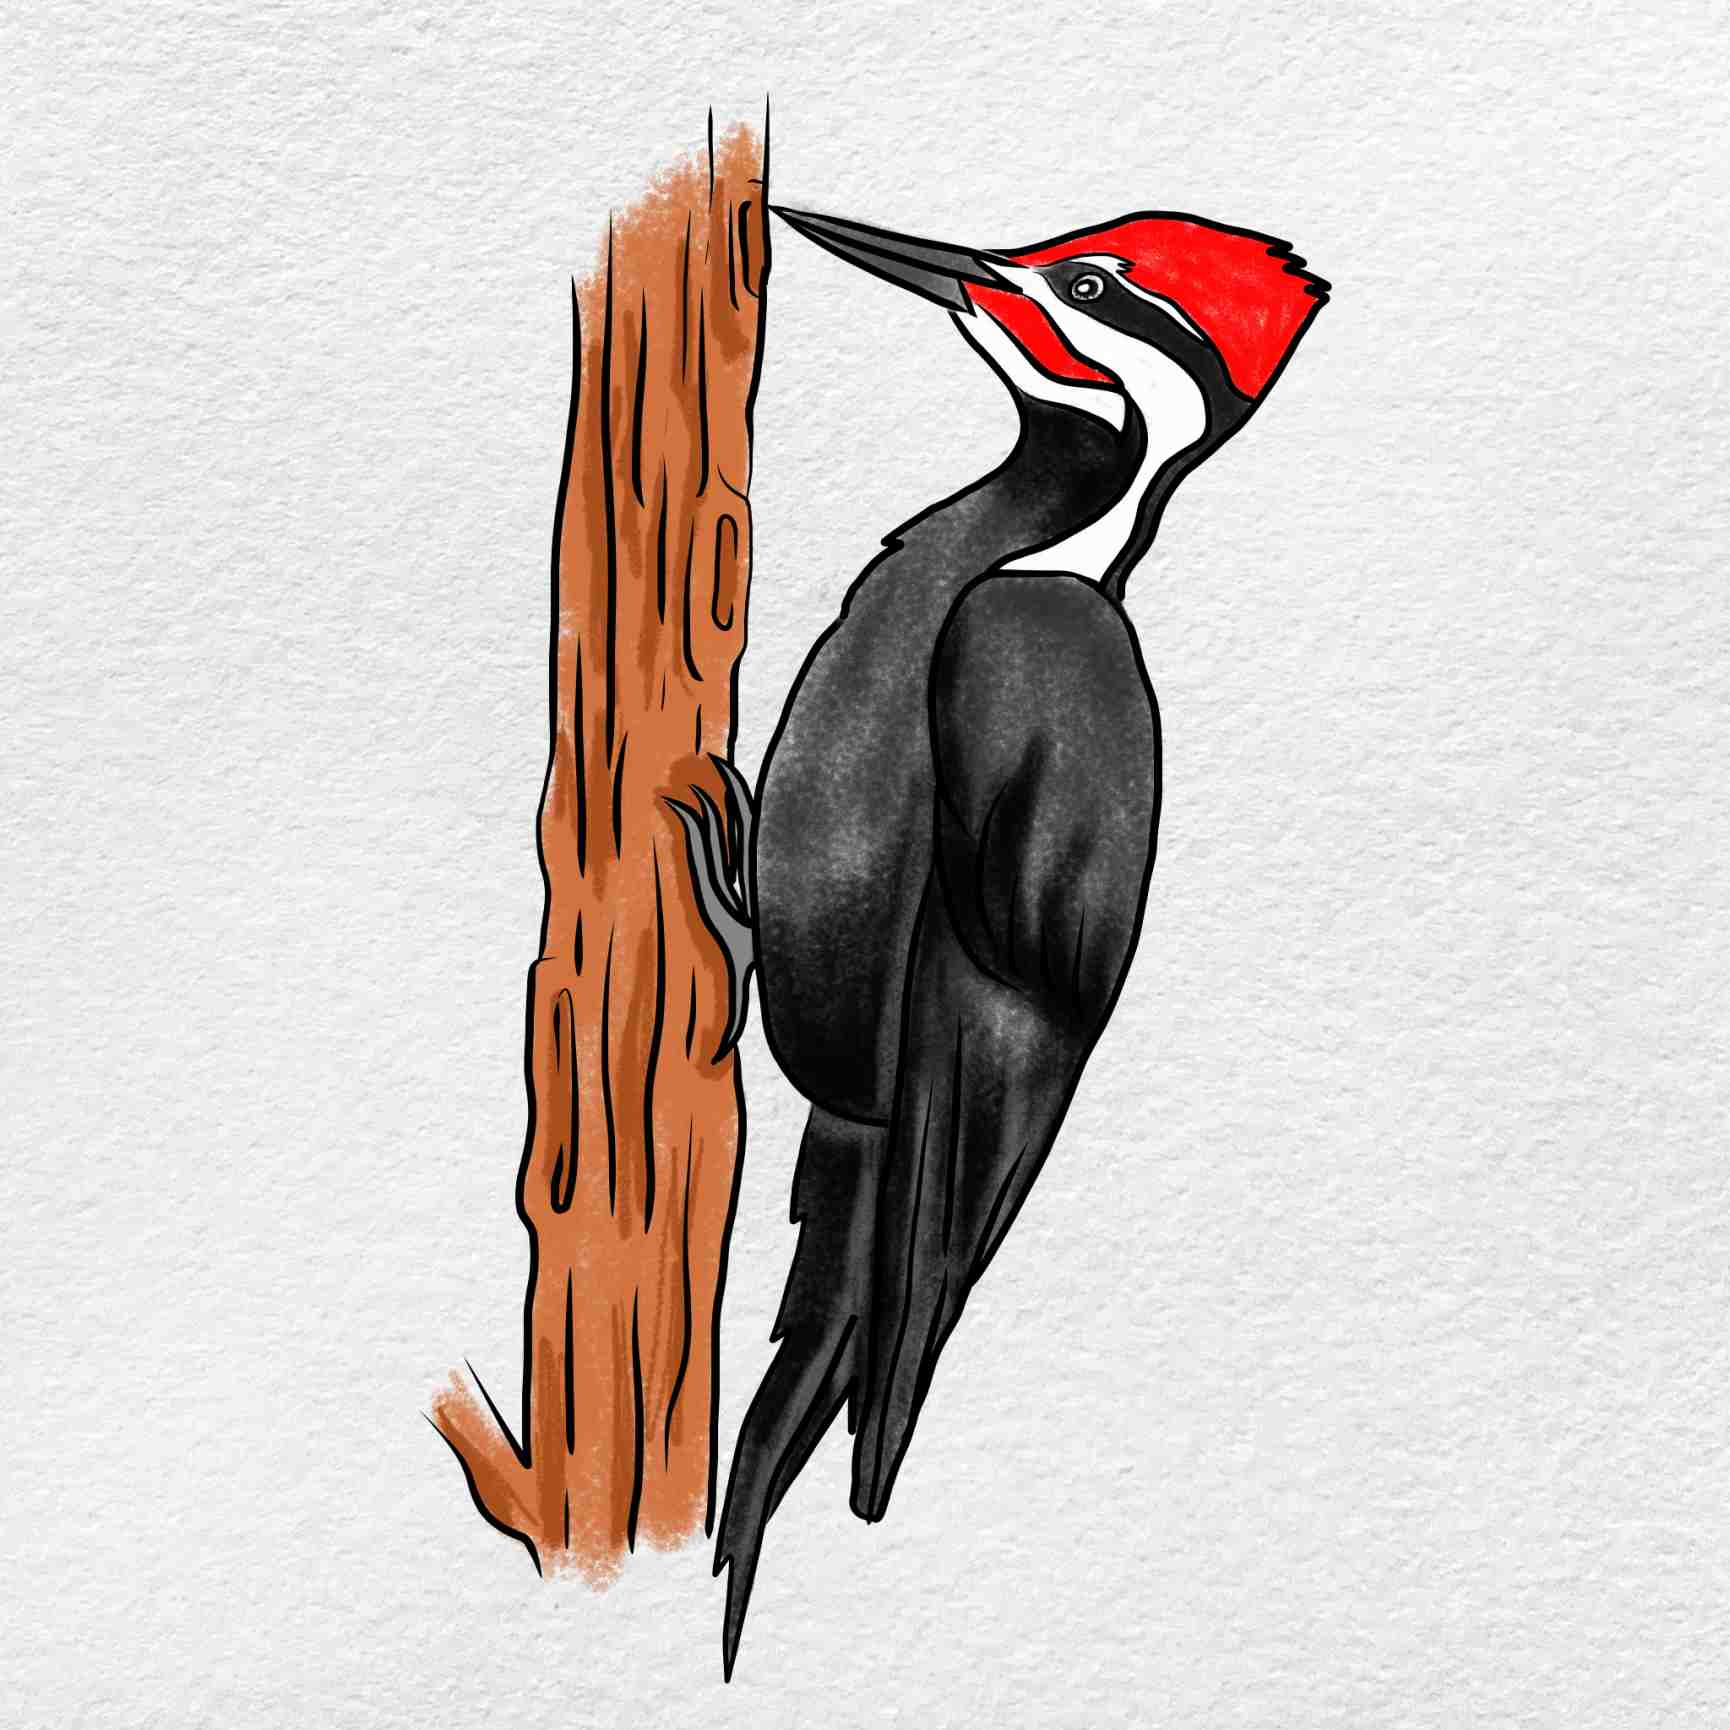 How To Draw A Woodpecker: Step 9